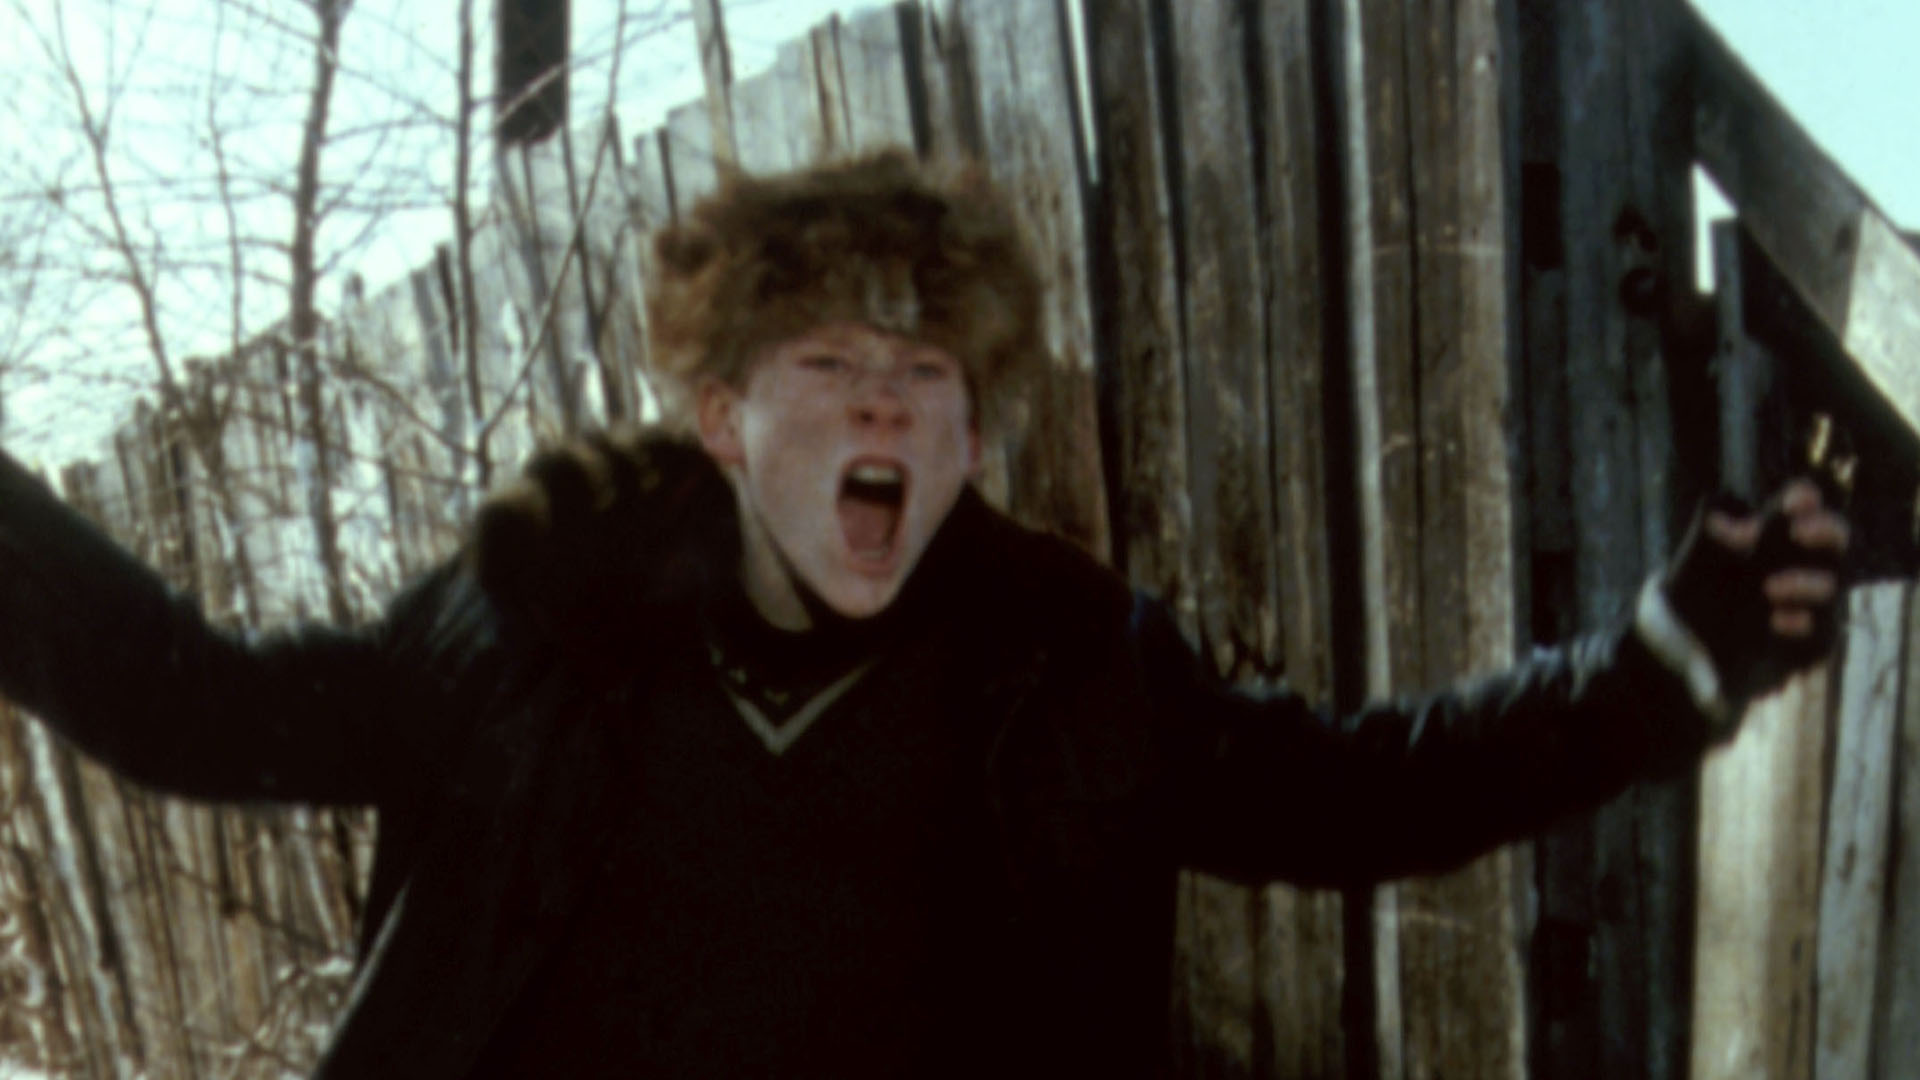 The Christmas Story Bully.A Christmas Story Actor Zack Ward Looks Back On Playing